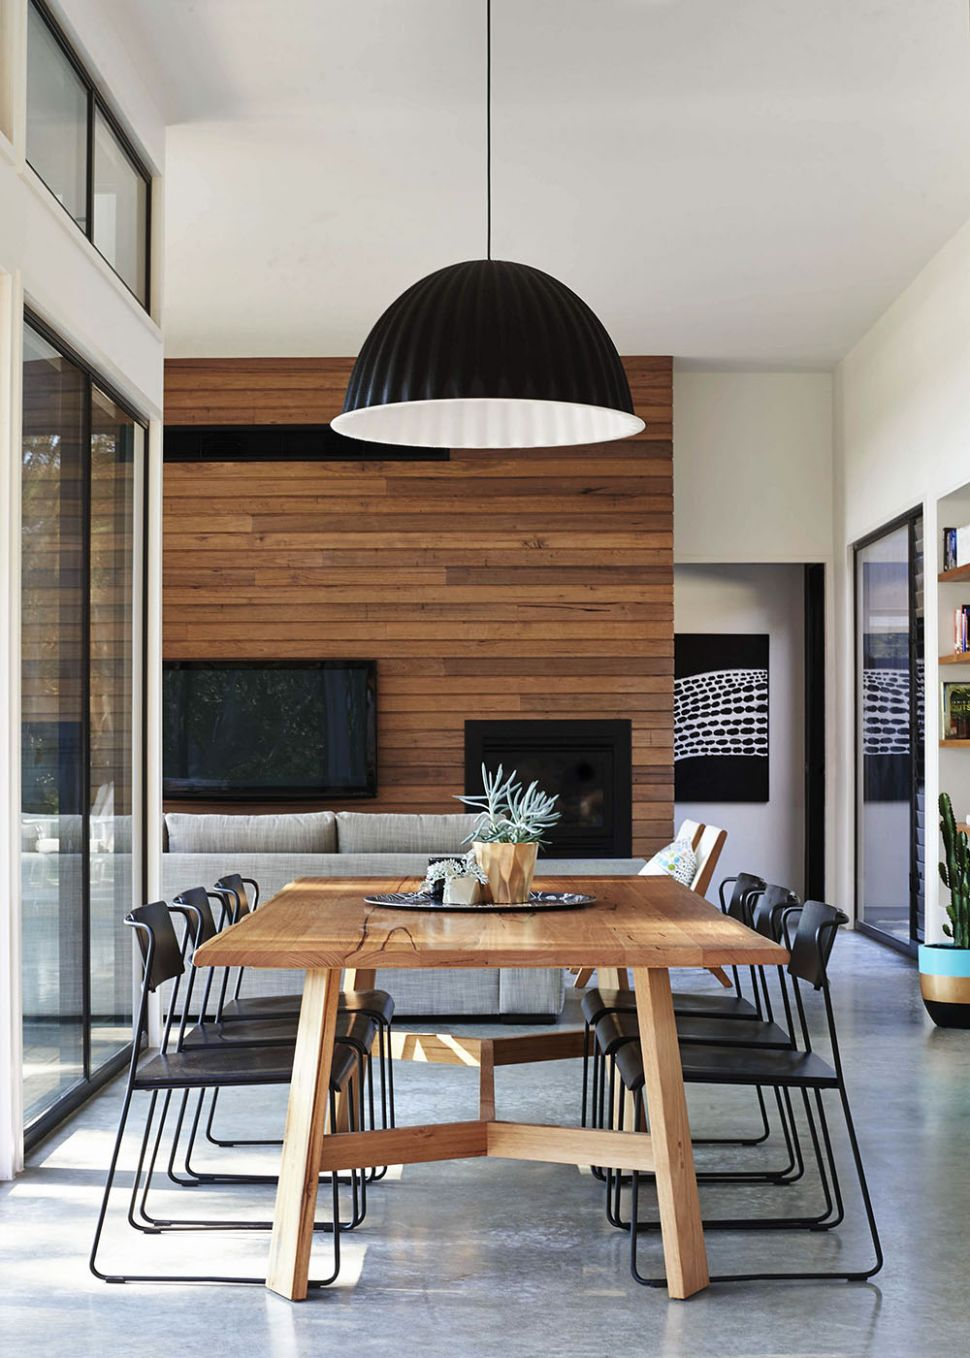 Home inspiration: Contemporary coastal style | Home Beautiful ...